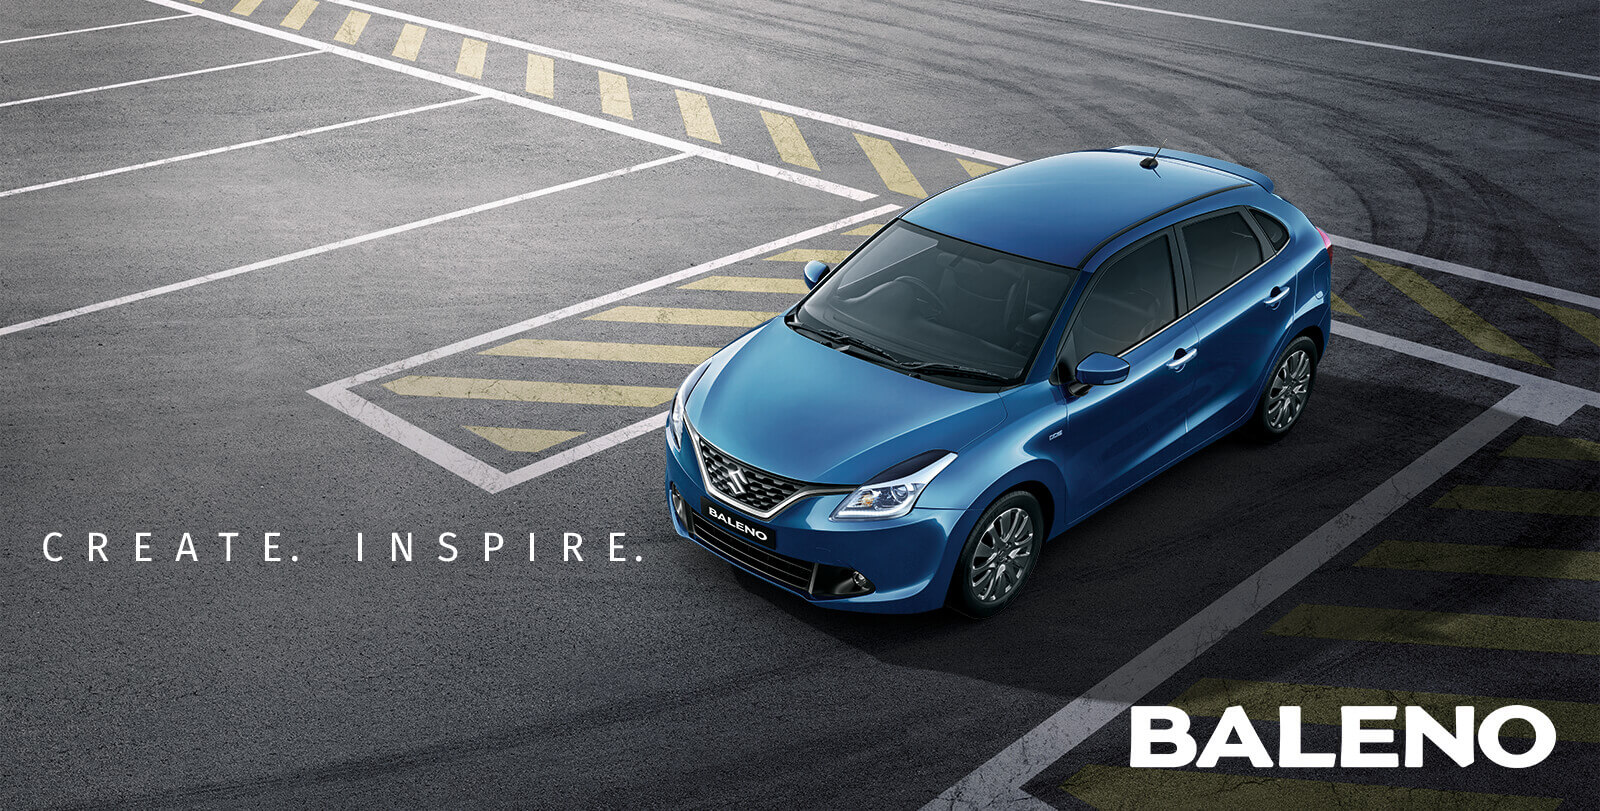 Baleno safety features